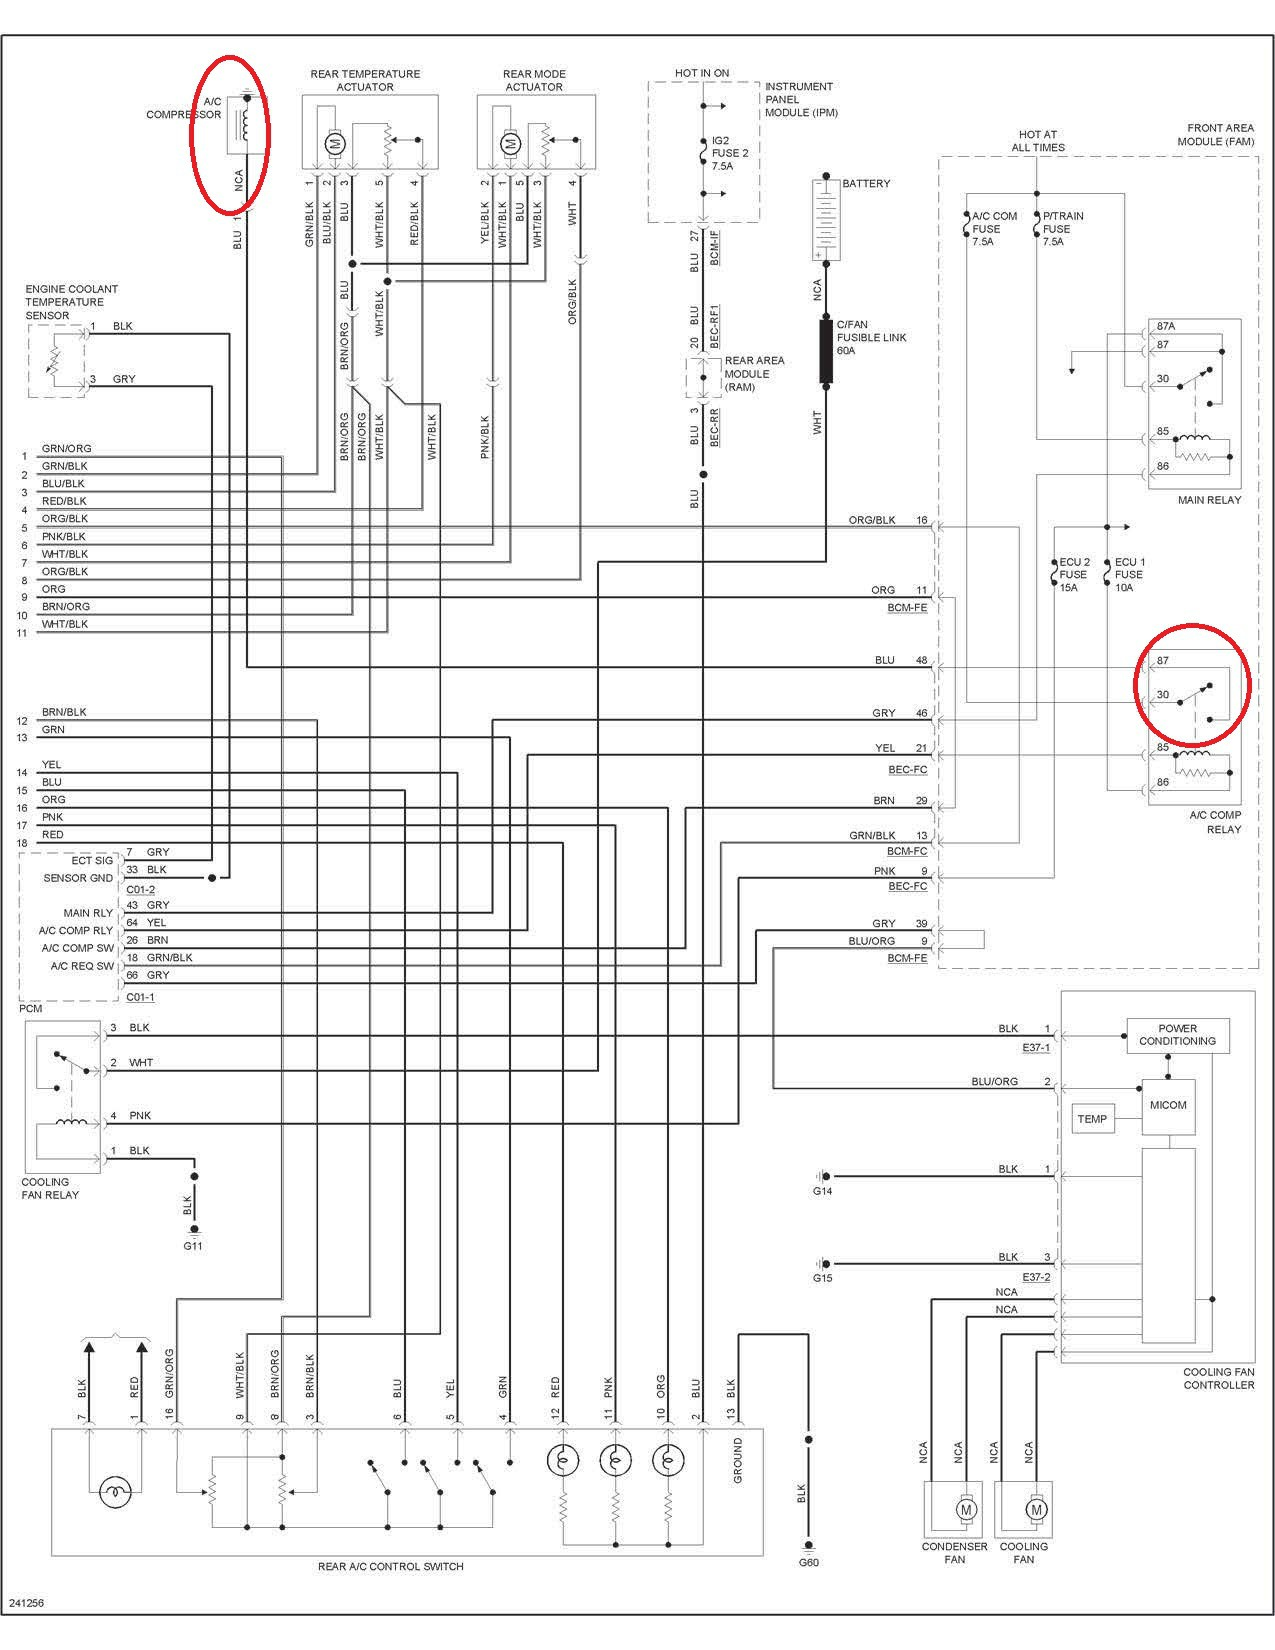 Hvac Electrical Wiring Diagram Kia Sportage Diagrams 98 I Have A 2006 Sedona The 7 5 Ac Fuse Keeps Blowing 2001